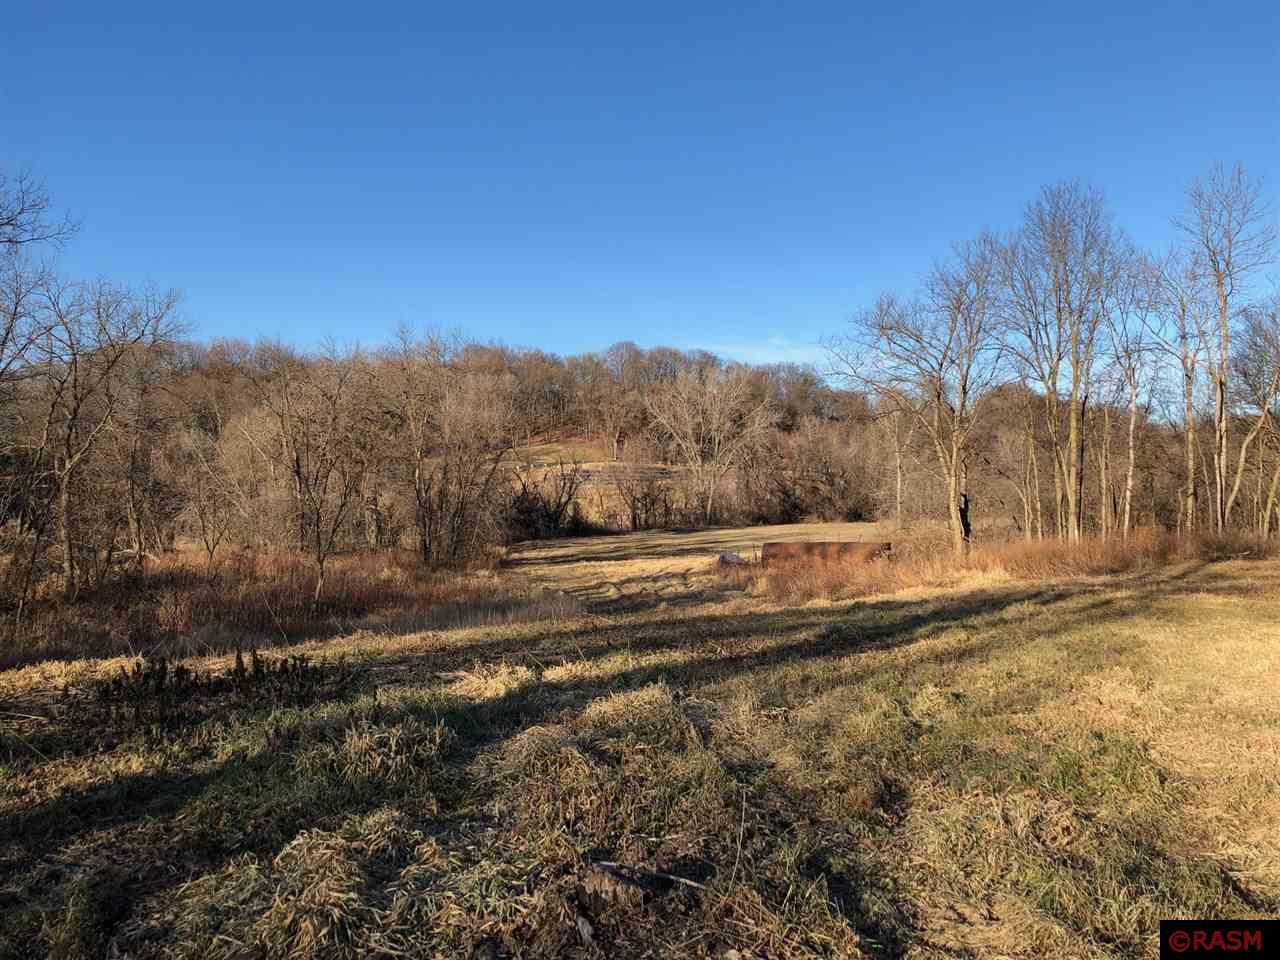 Nature at its finest with abundant wildlife - a hunters paradise!  21.65 acres located on the Le Sueur River.  Zoned agricultural and can have livestock.  Great location only 10 minutes from Mankato.